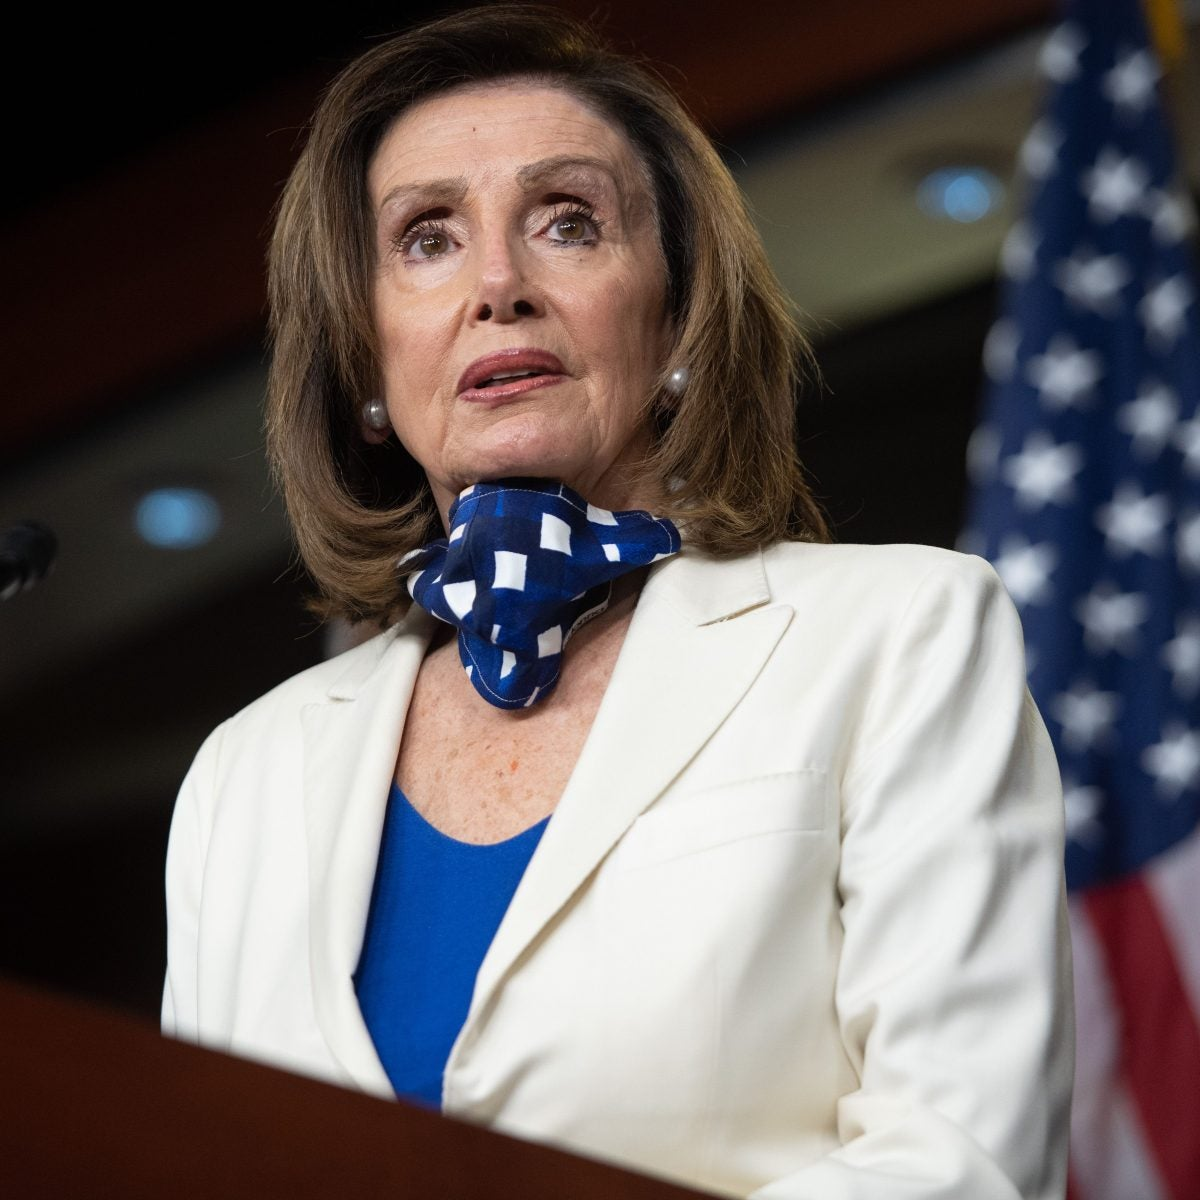 Pelosi Says Trump Rally Could Have Been A Zoom Meeting Based On Crowd Size